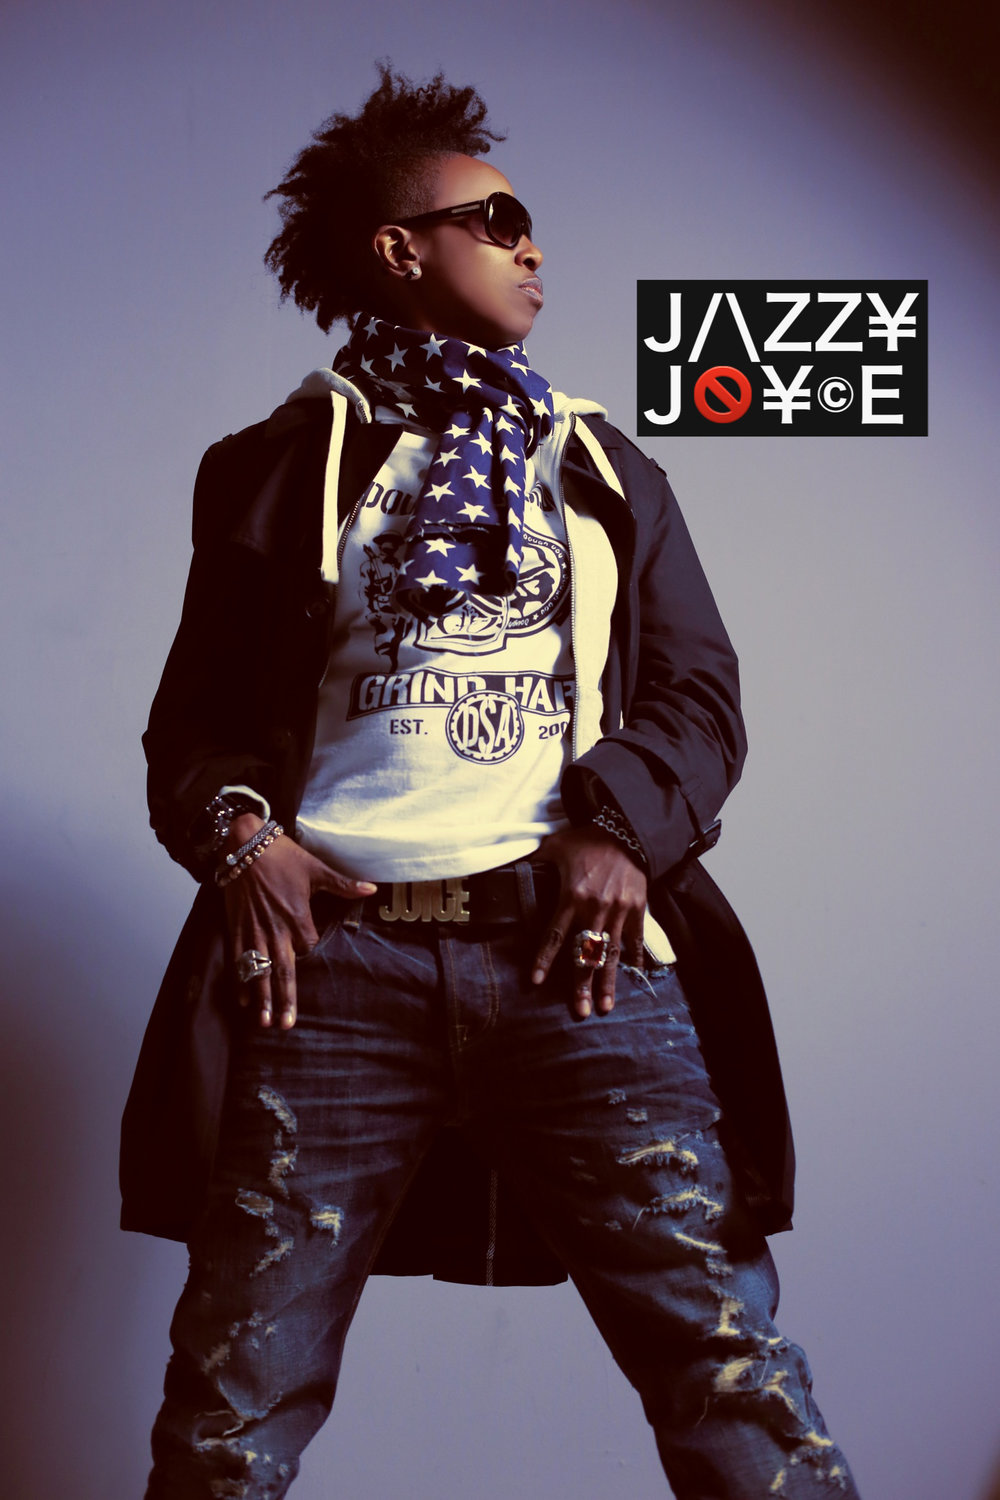 The Legendary Jazzy Joyce